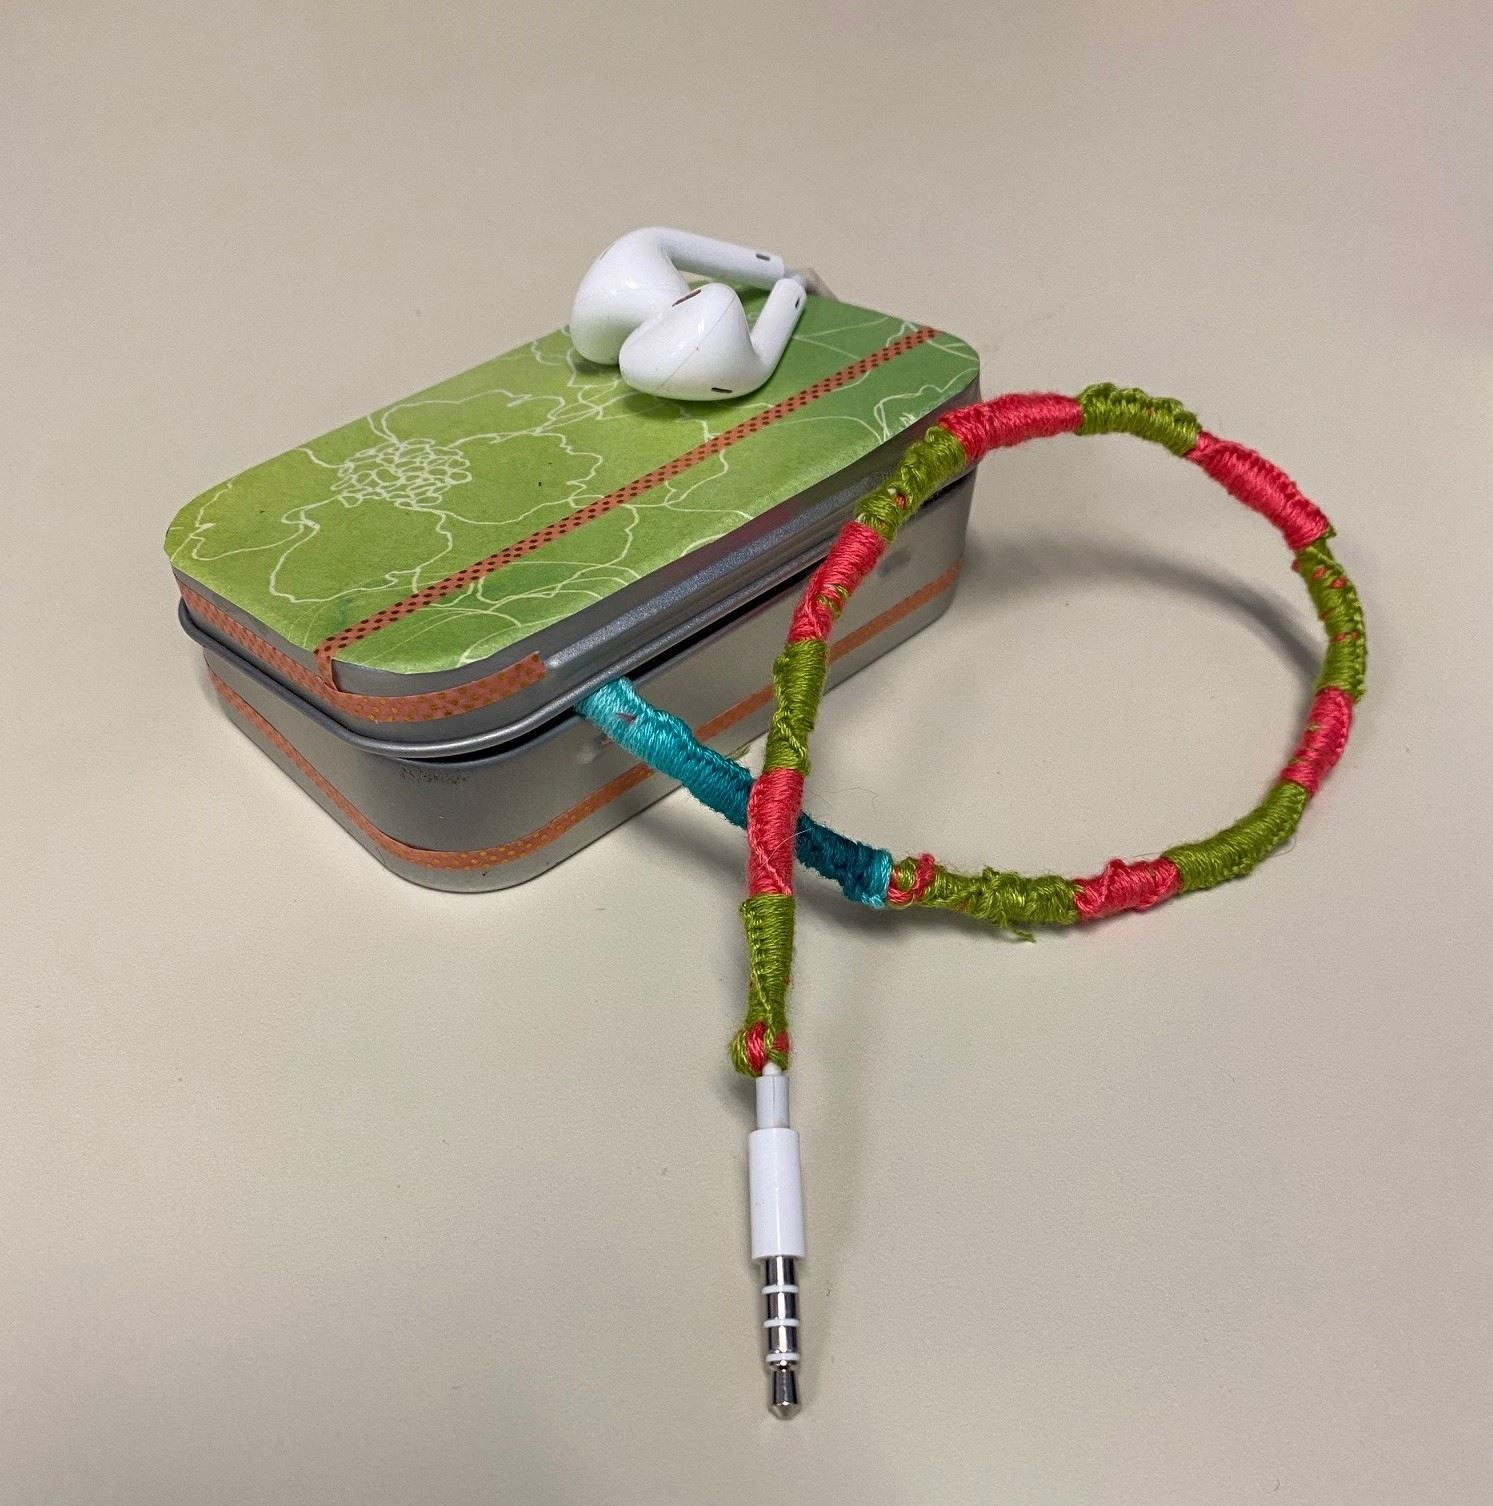 Earbud Holders and Wrapped Earbuds (Teen Take & Make, Grades 6-12)